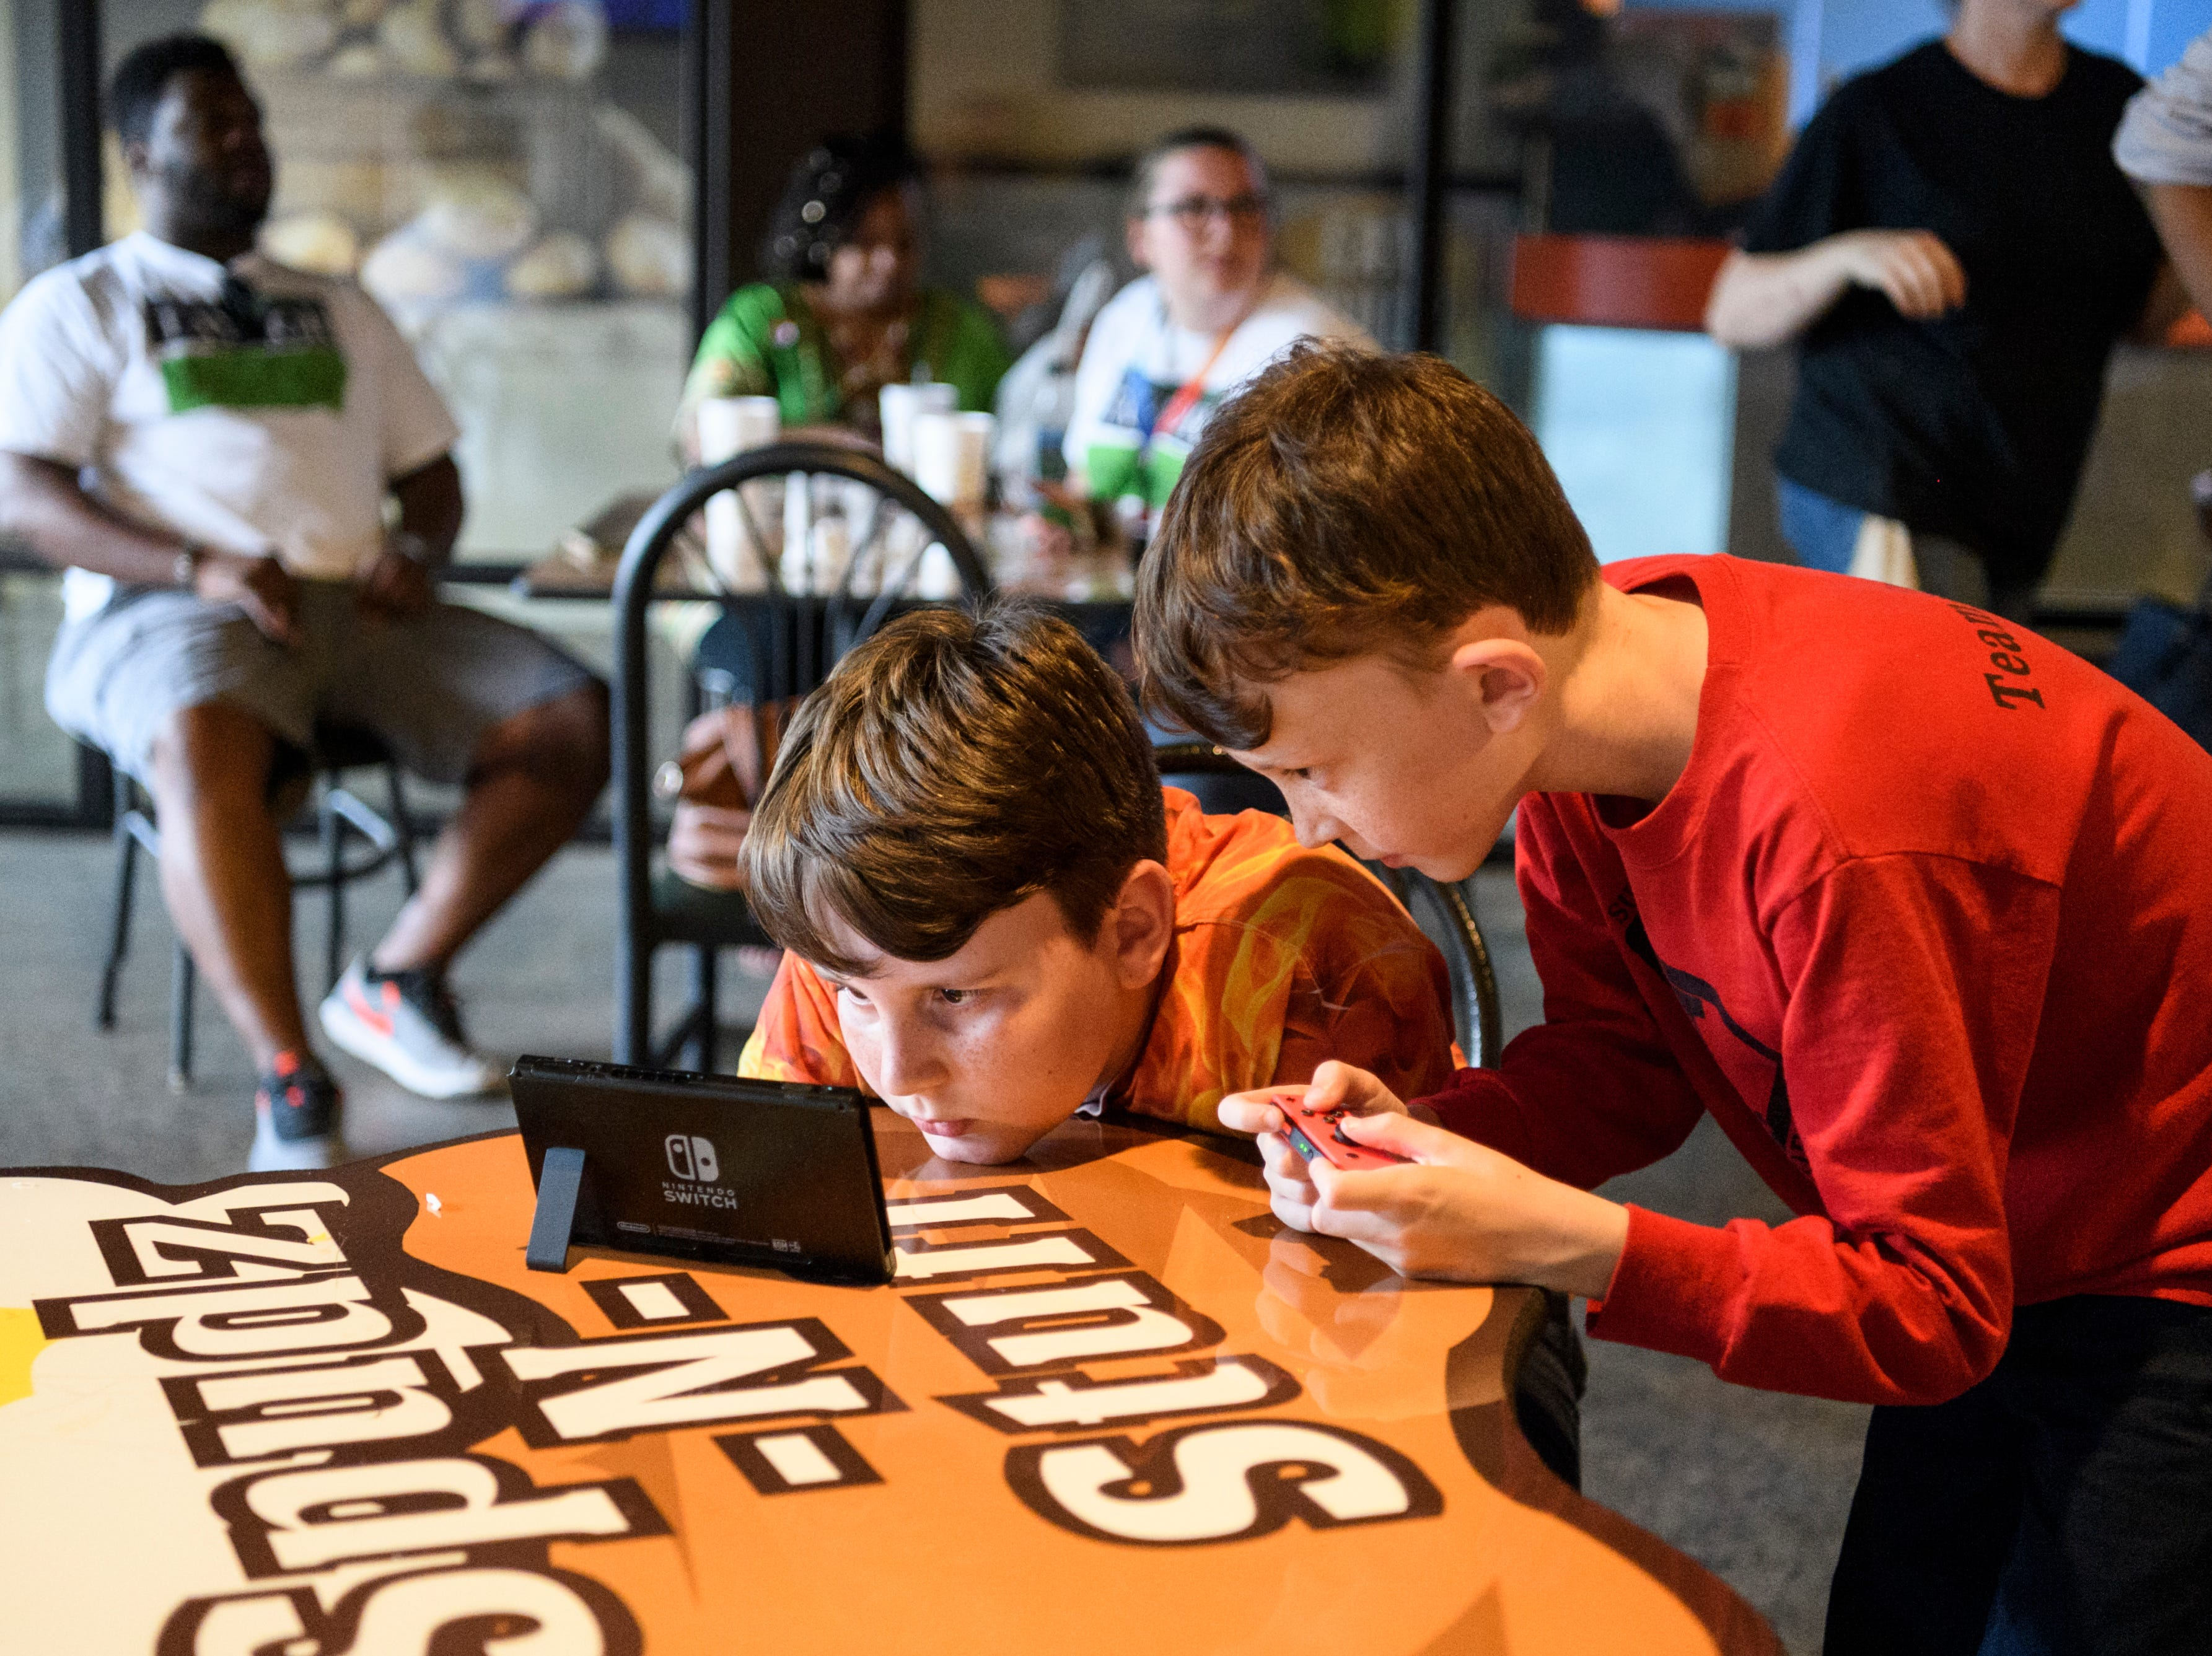 Brothers Sam, left, and Peter Ungar, right, play a game on their Nintendo Switch as adults wait for election results to come in during a watch party at Spudz-N-Stuff on Washington Avenue in Evansville, Ind., Tuesday, May 7, 2019. Their mother Gina Robinson Ungar won one of three democratic at-large city council spots for the upcoming November general election.